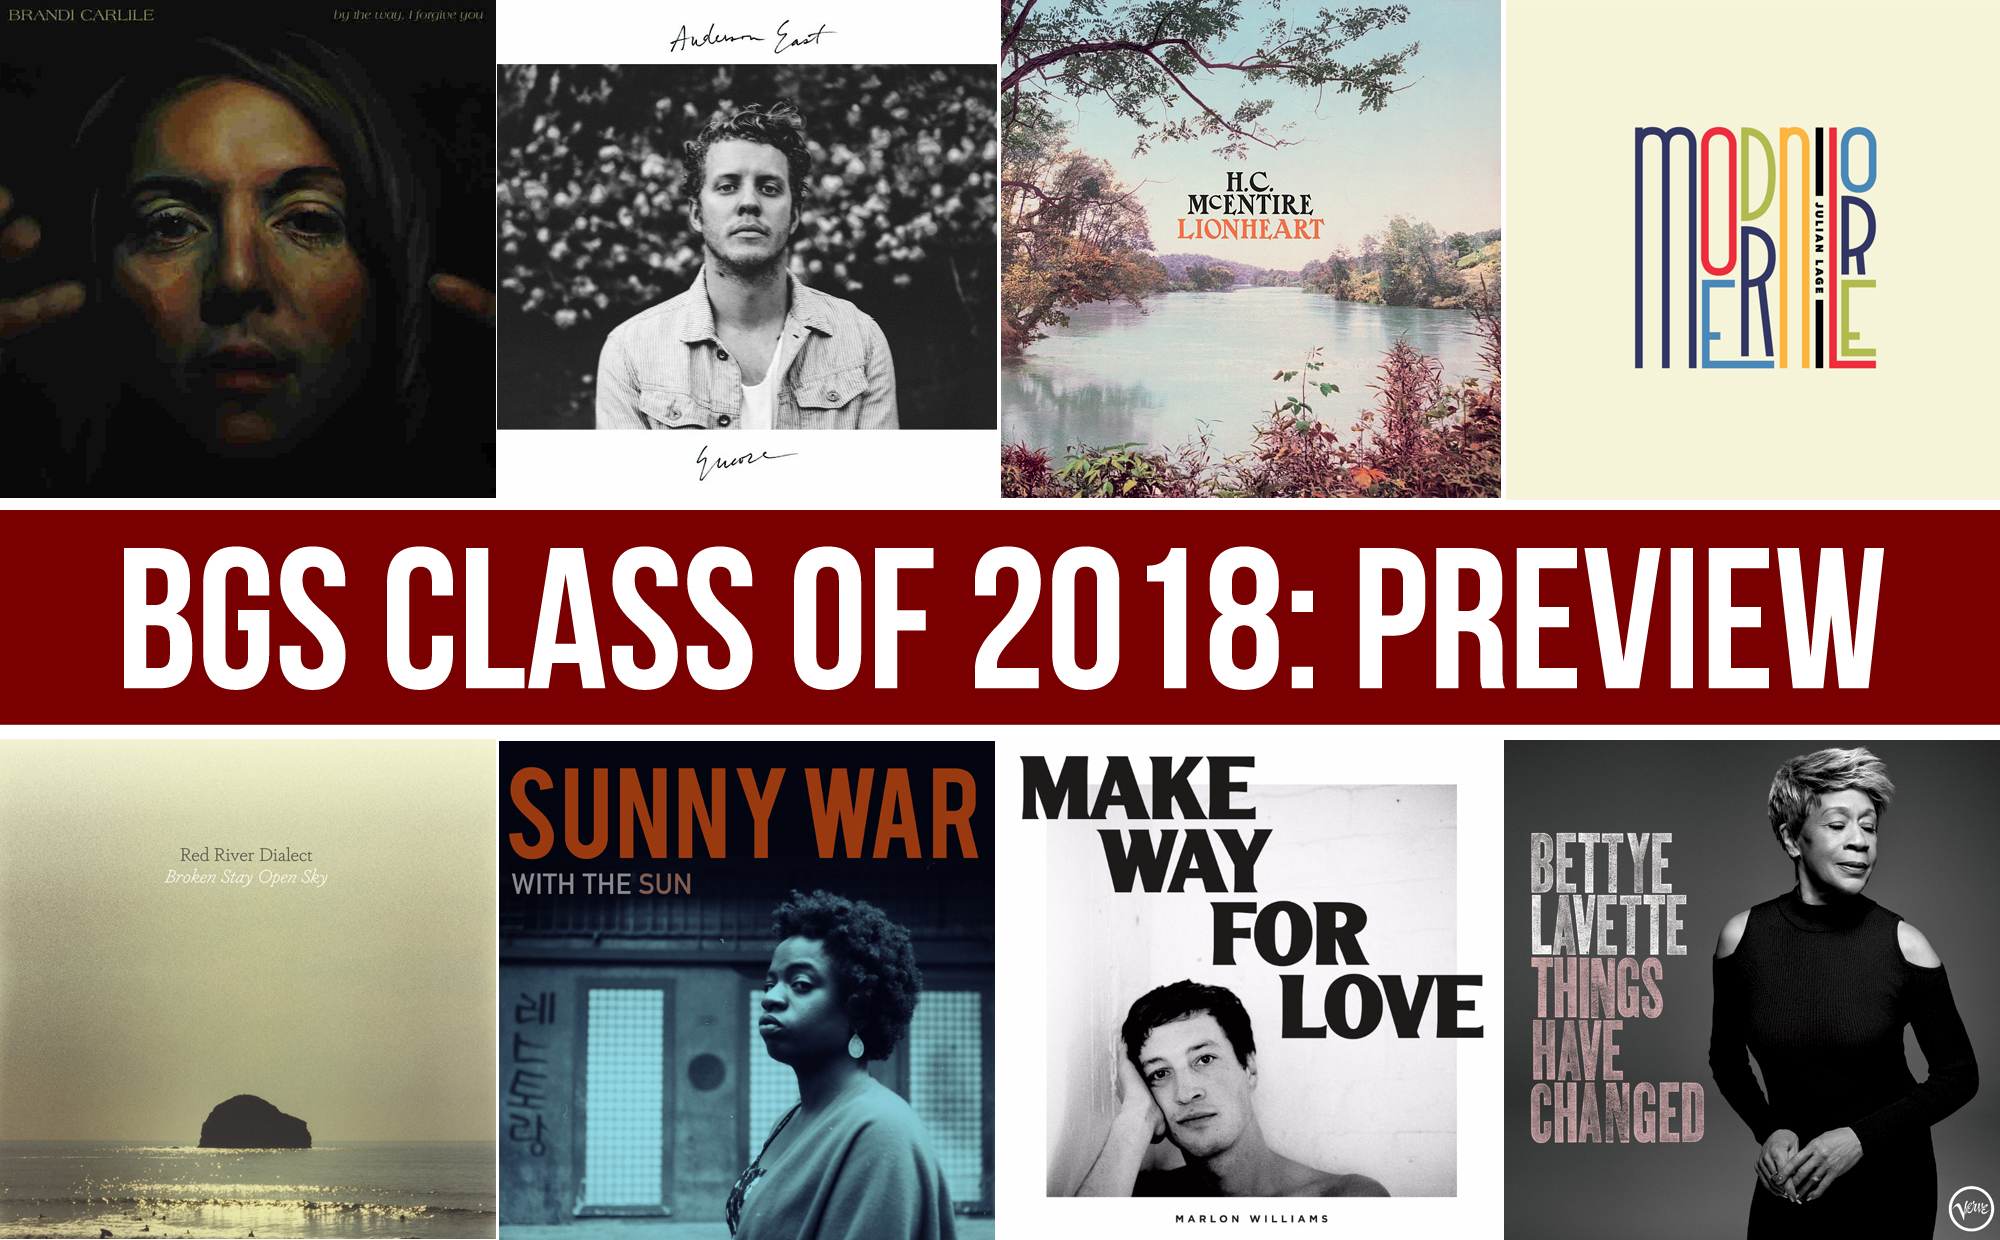 BGS Class of 2018: Preview